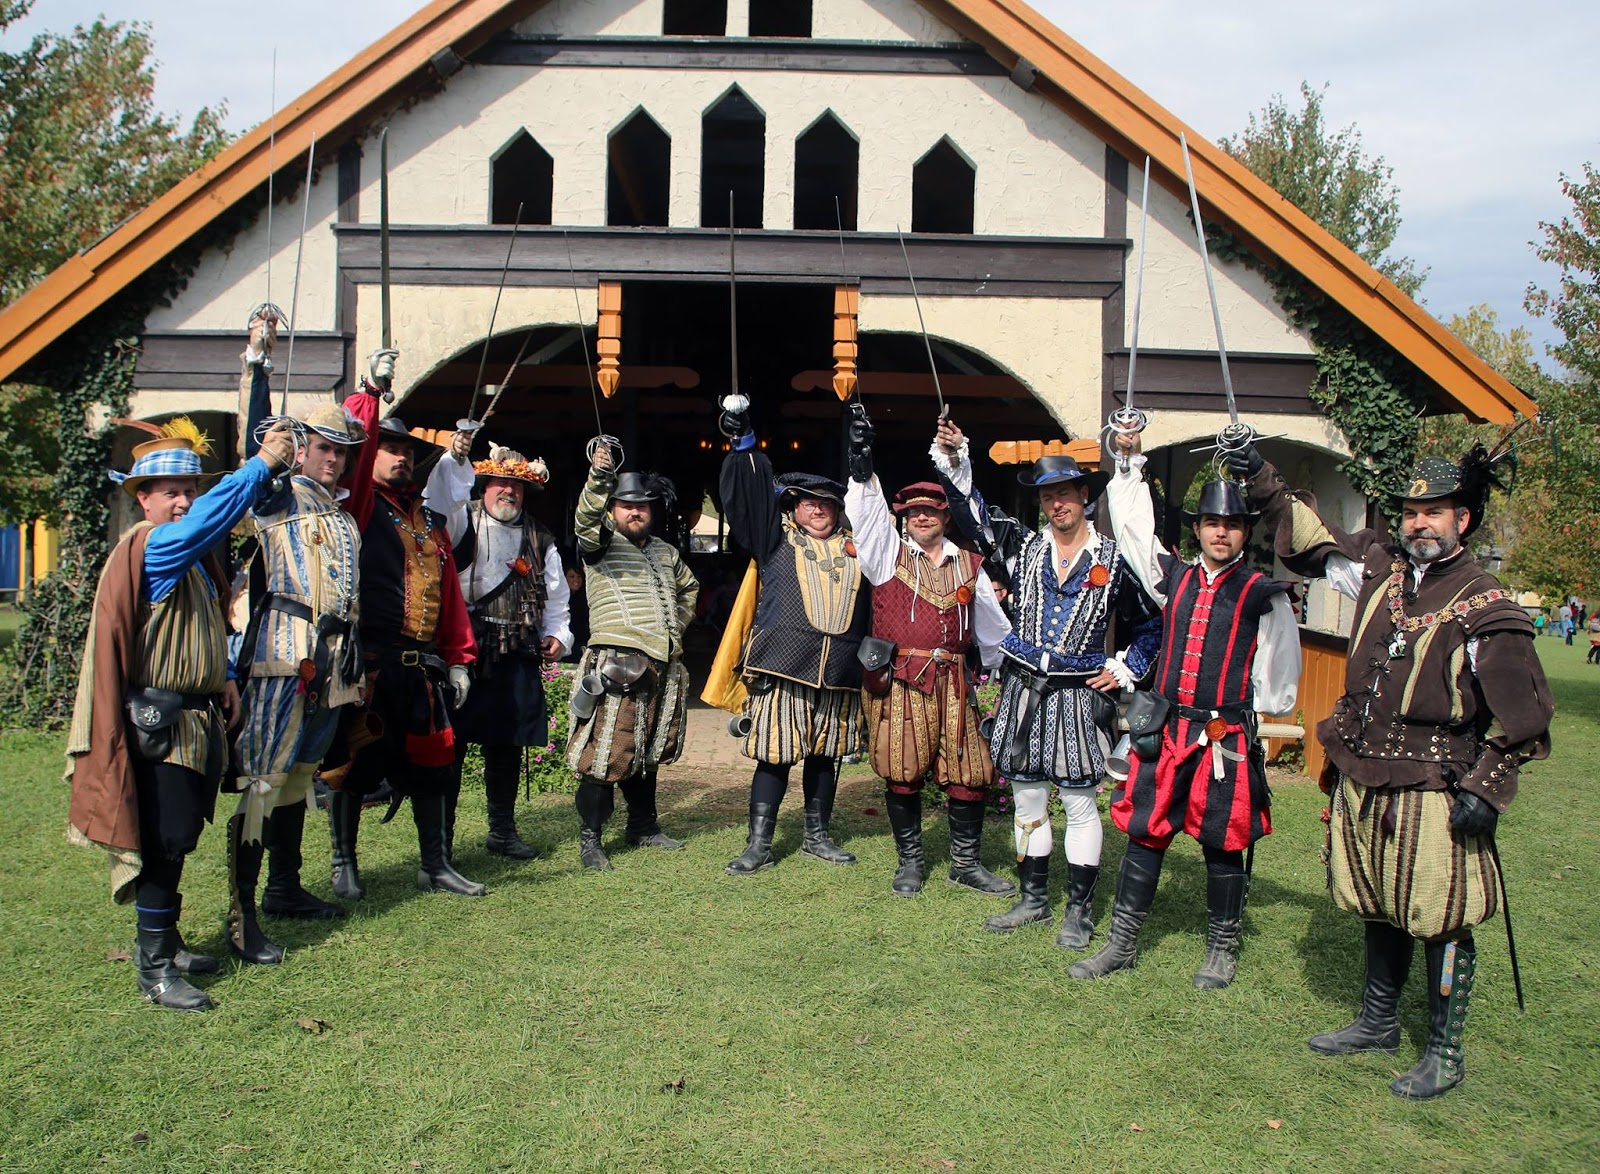 group of men in renaissance costumes holding up swords